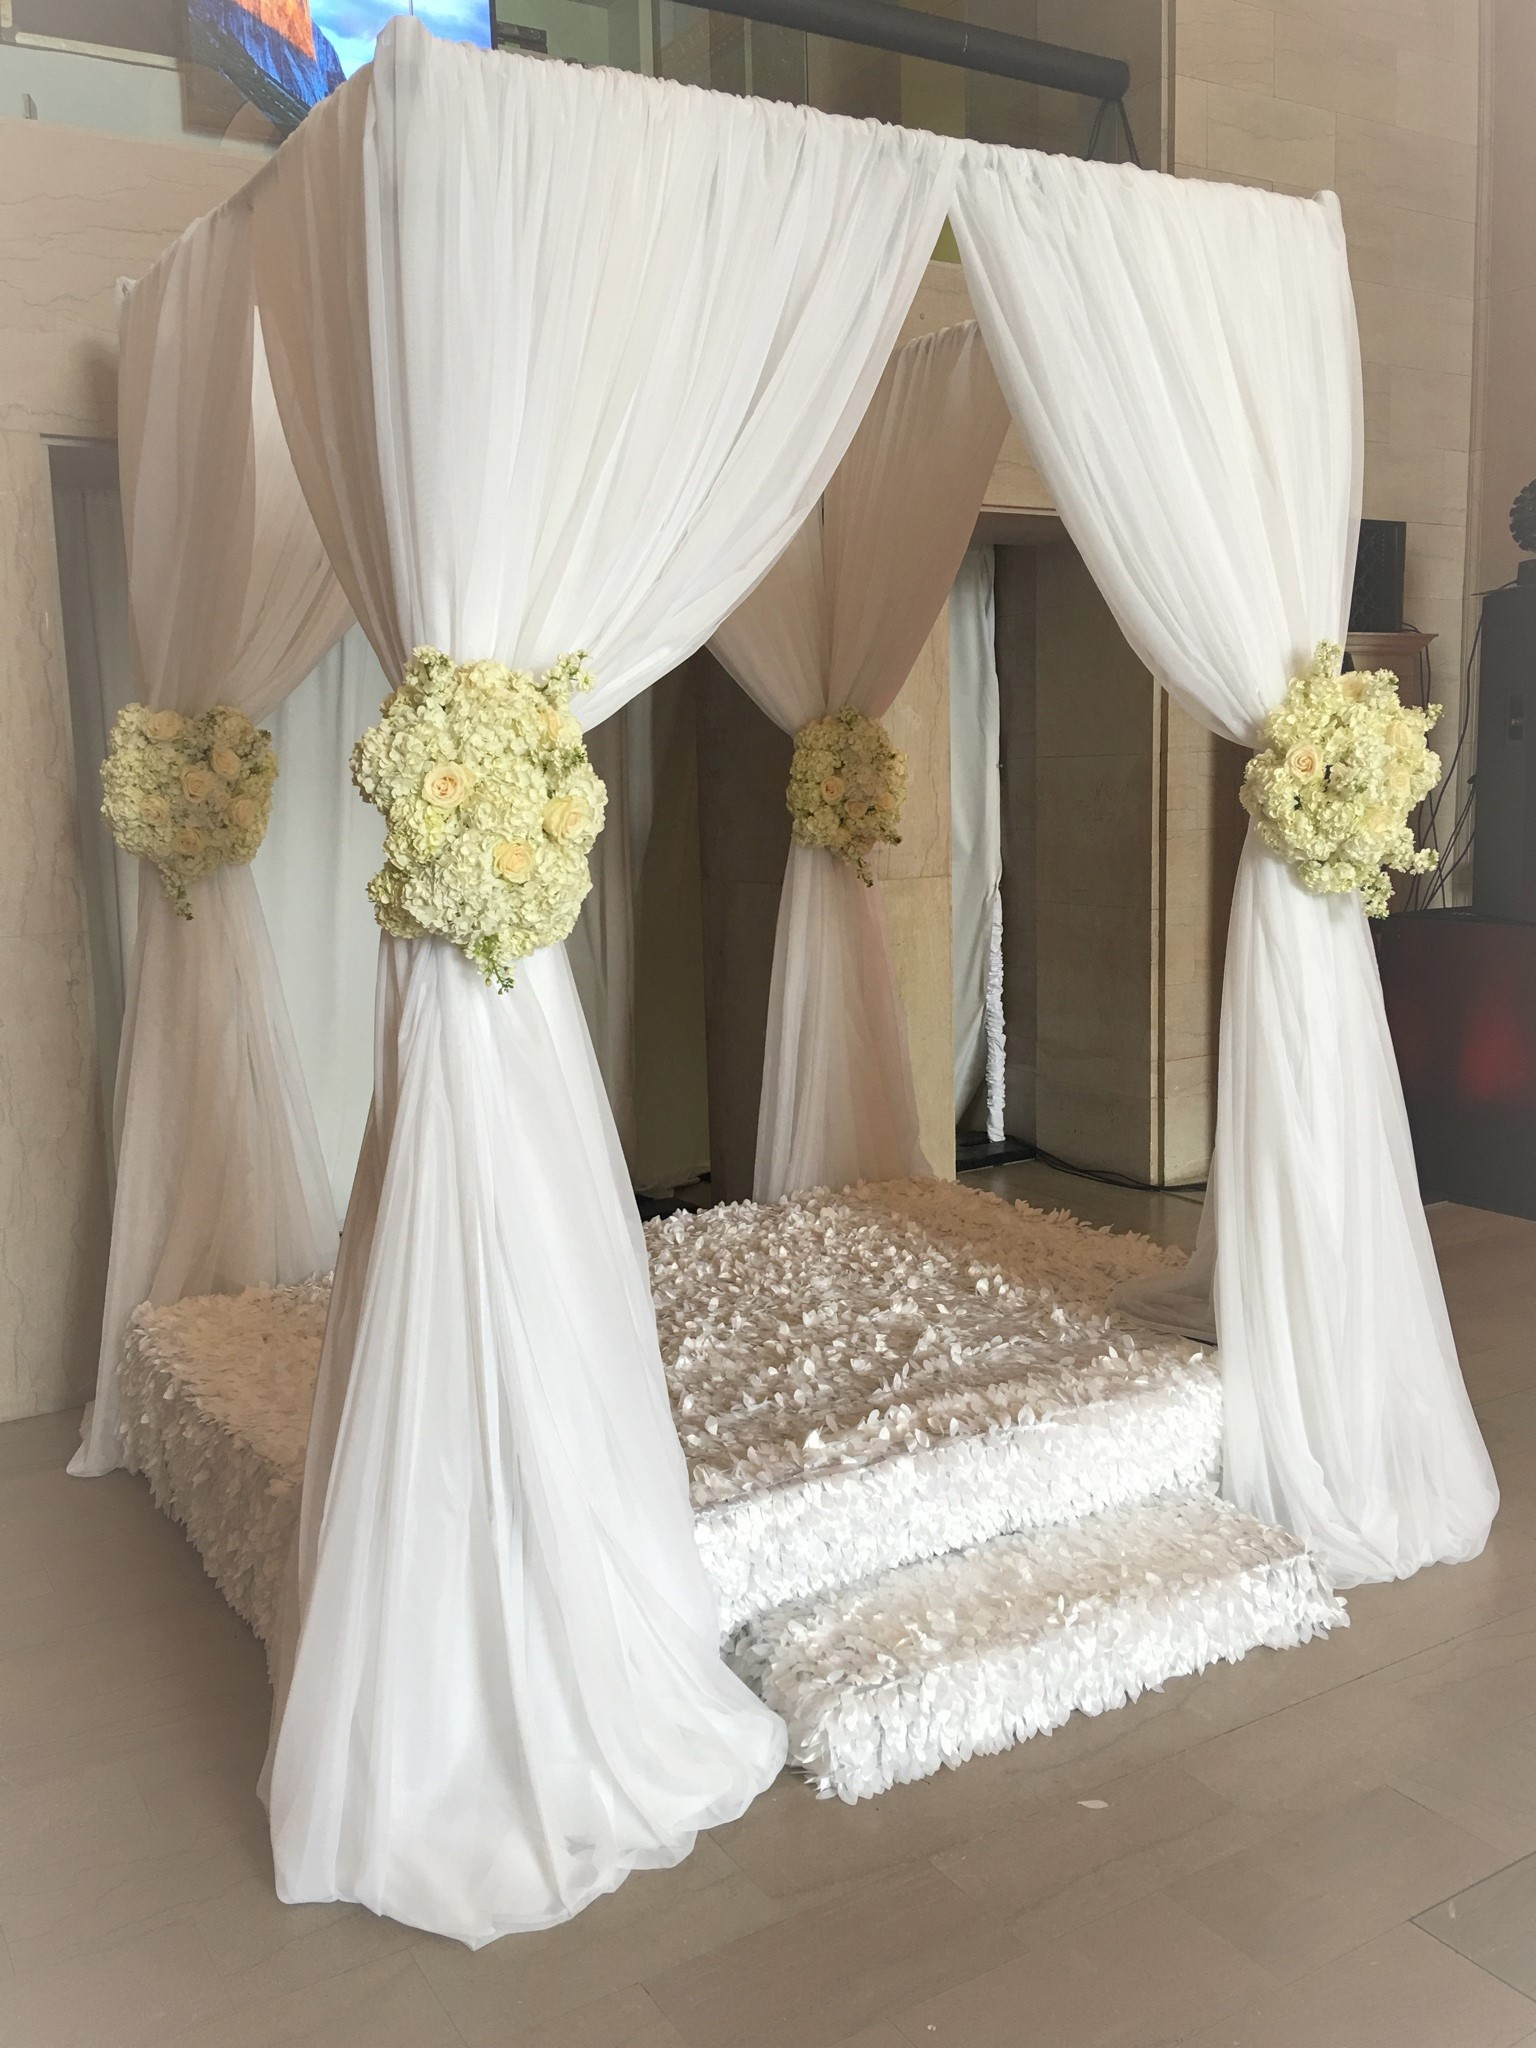 drapes wedding drape with decor galleries event and ceiling more lighting